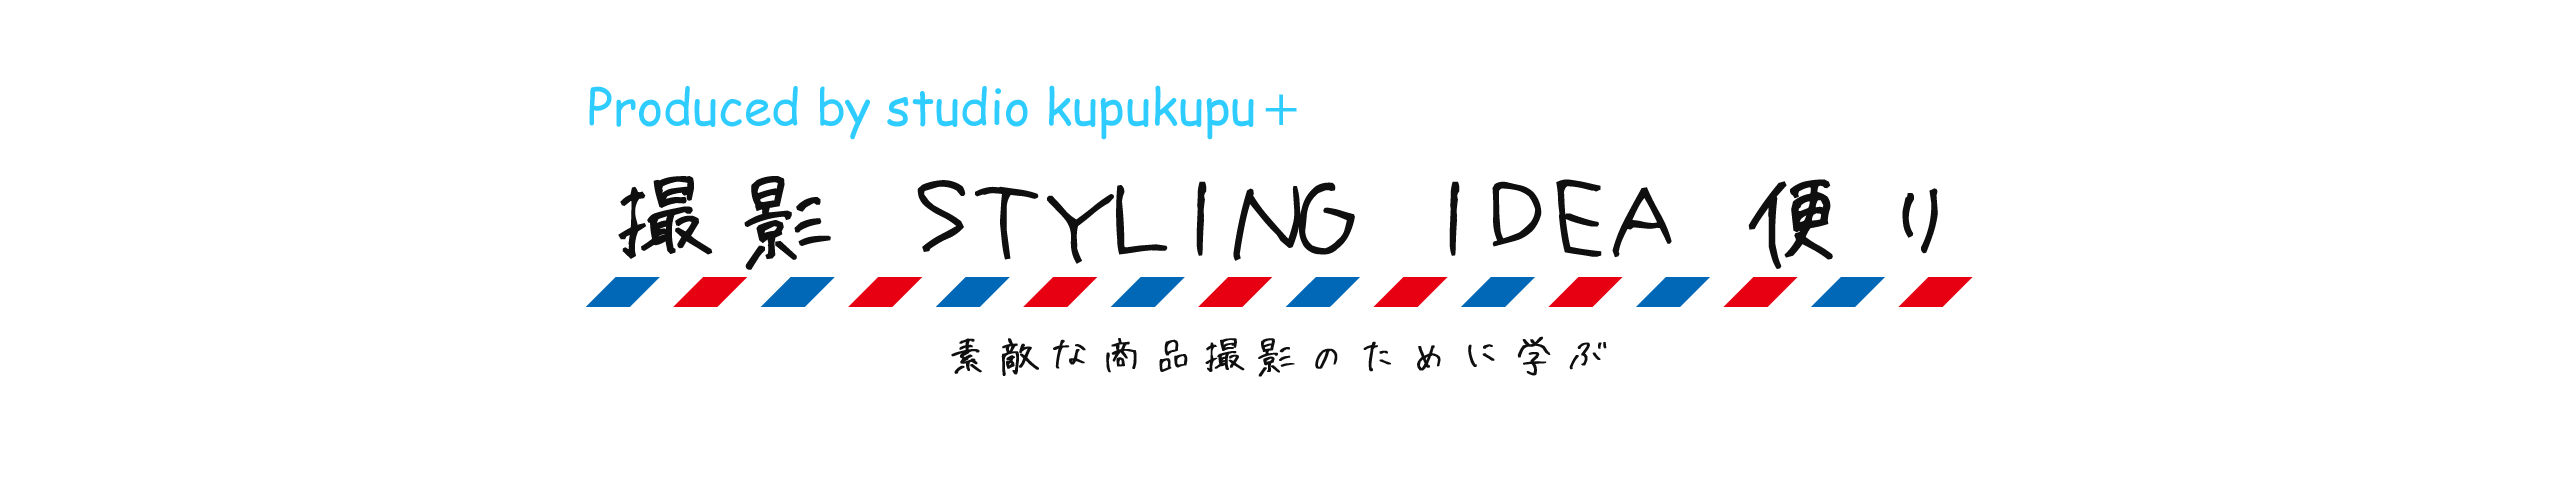 撮影 styling idea便り